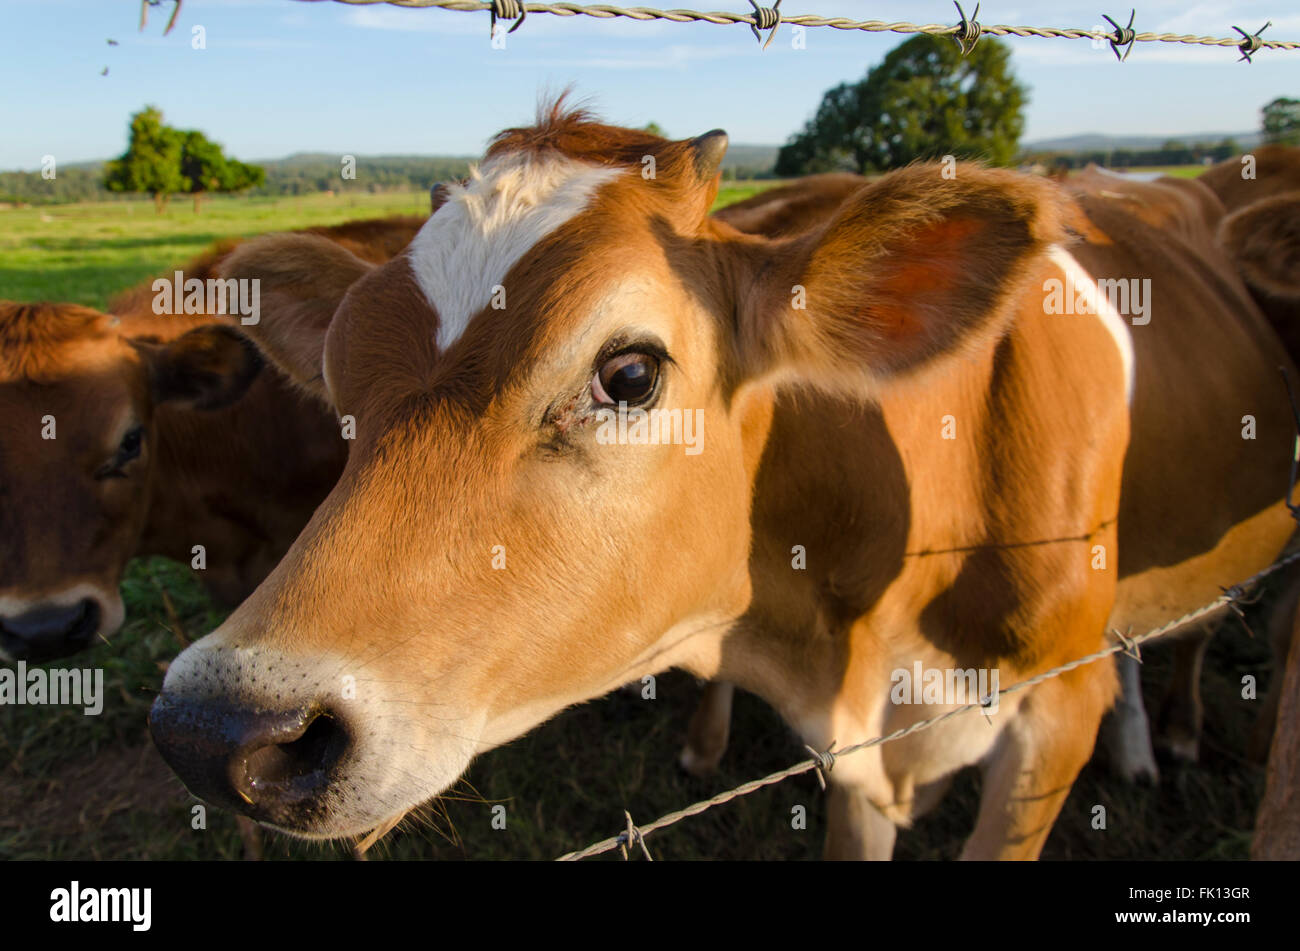 young Jersey cows on a farm near a barbed wire fence - Stock Image